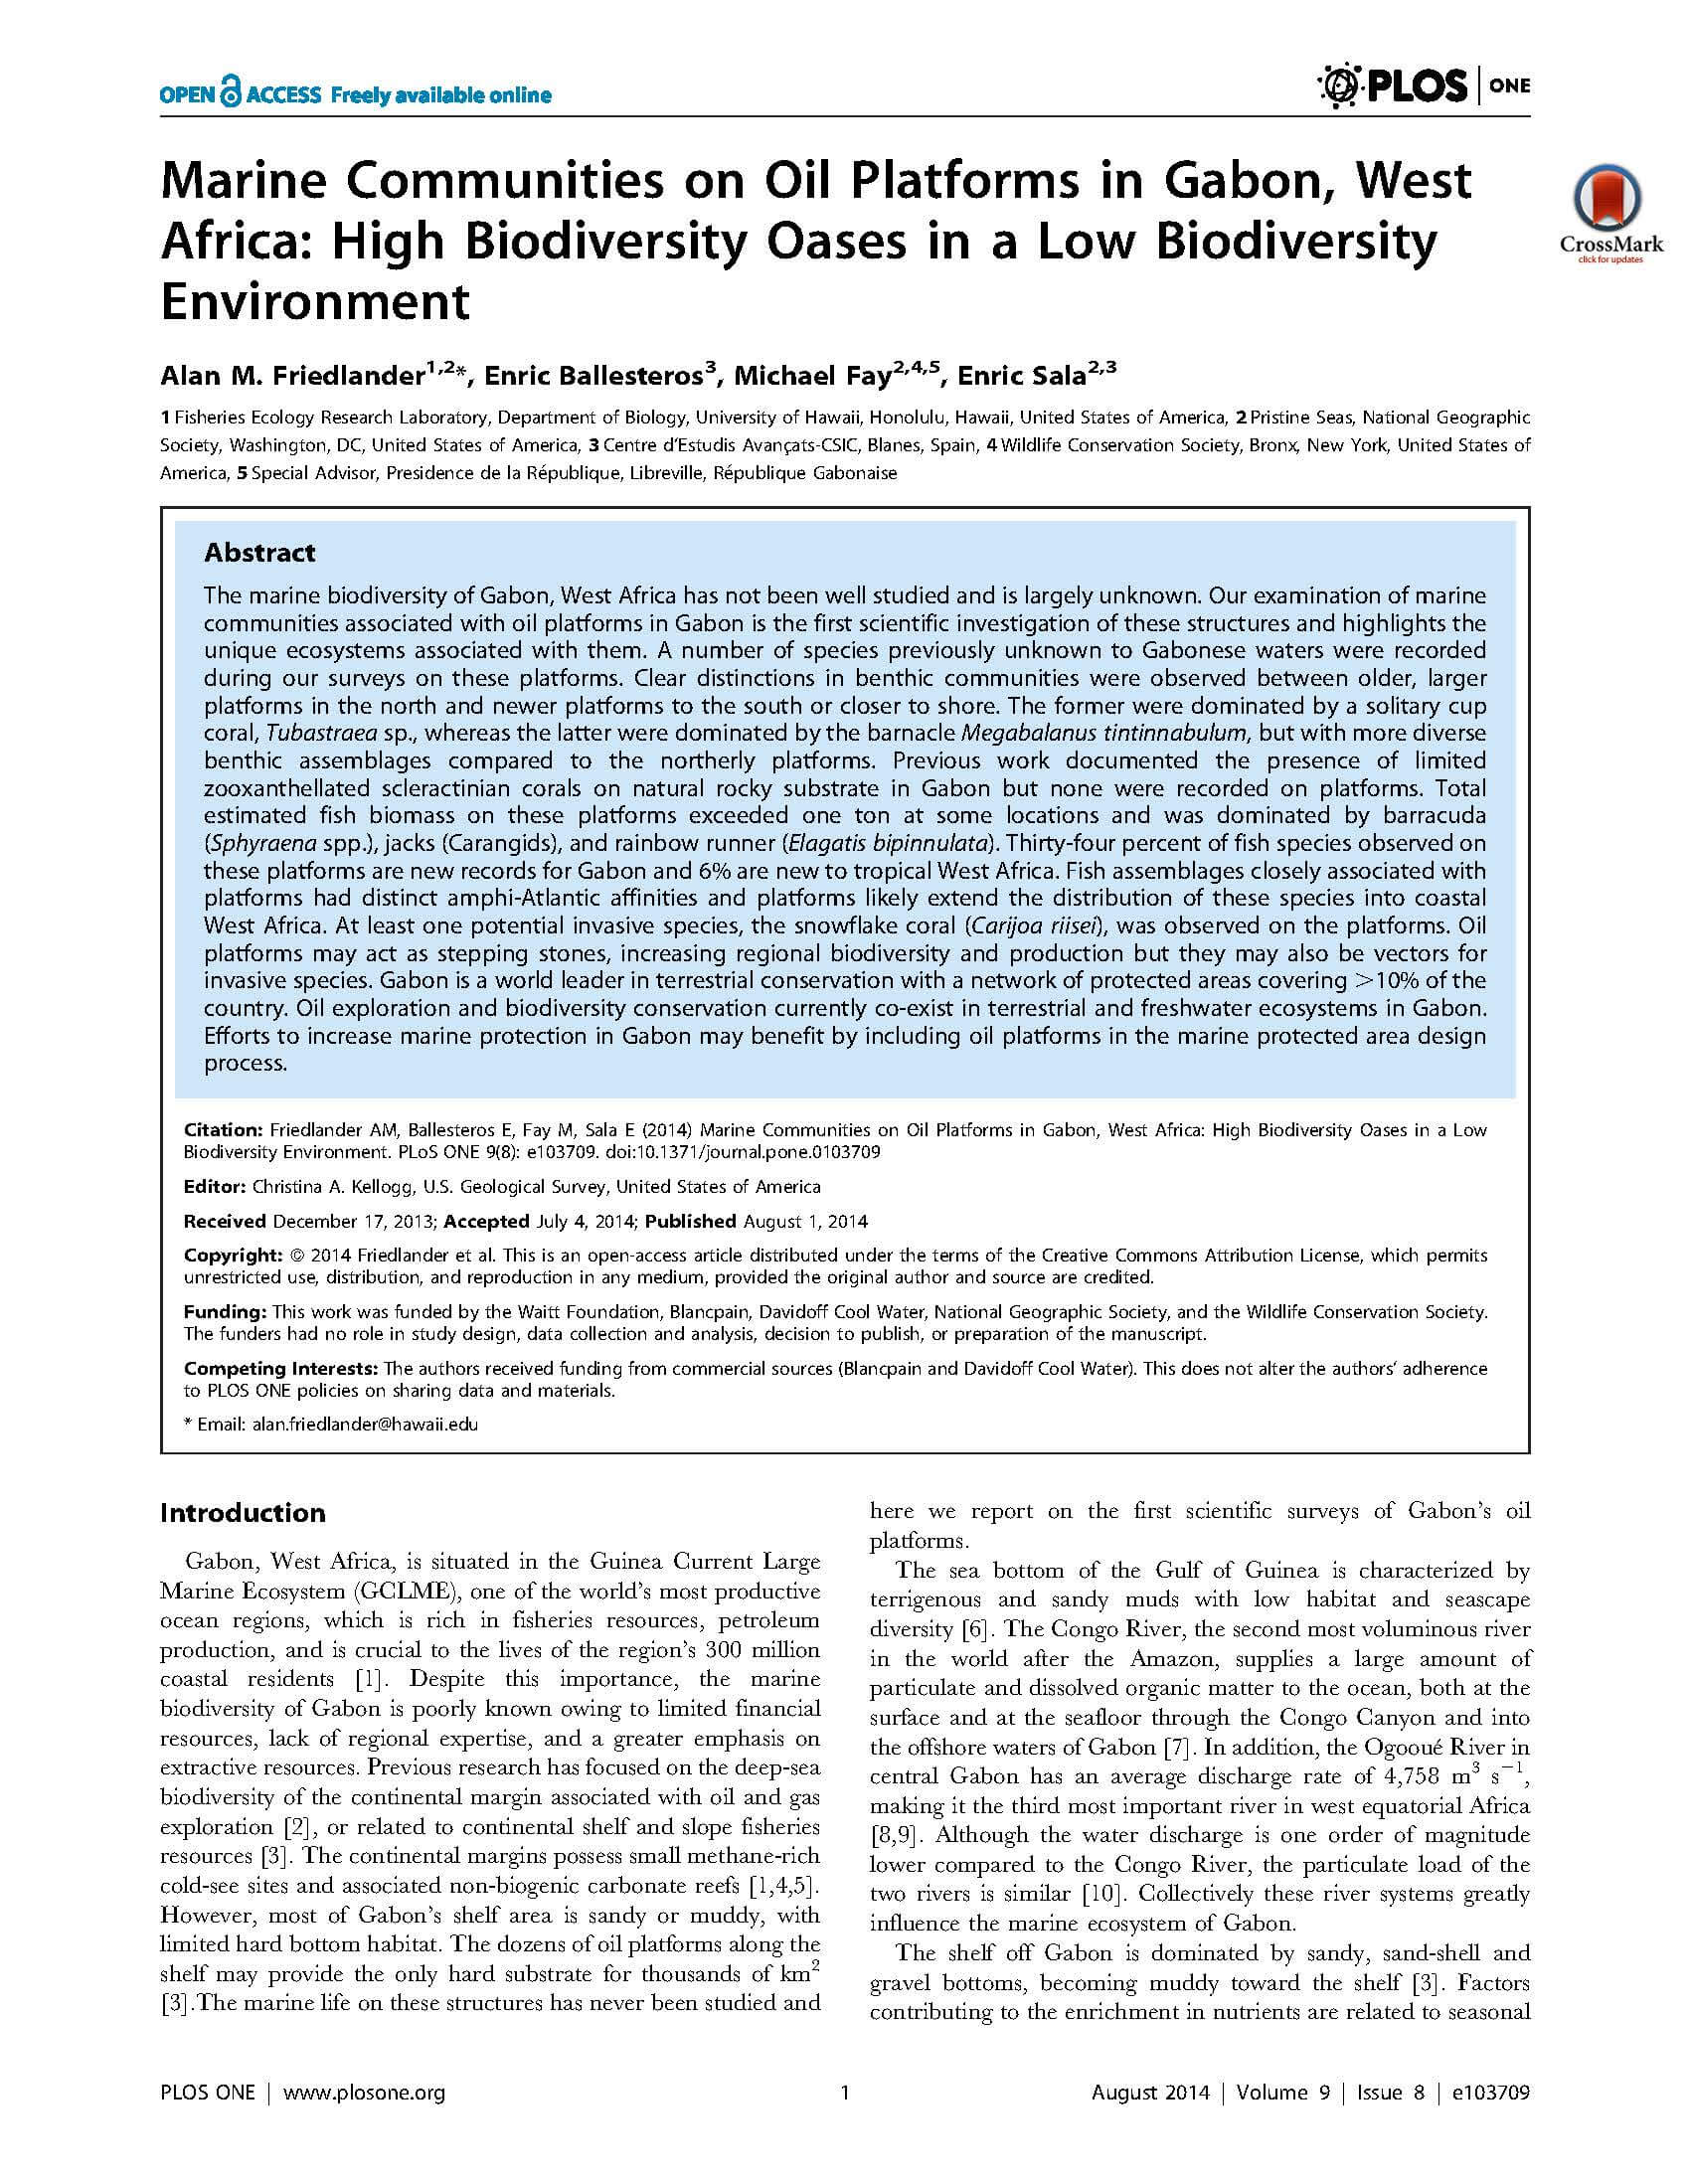 Marine Communities on Oil Platforms in Gabon, West Africa: High Biodiversity Oases in a Low Biodiversity Environment